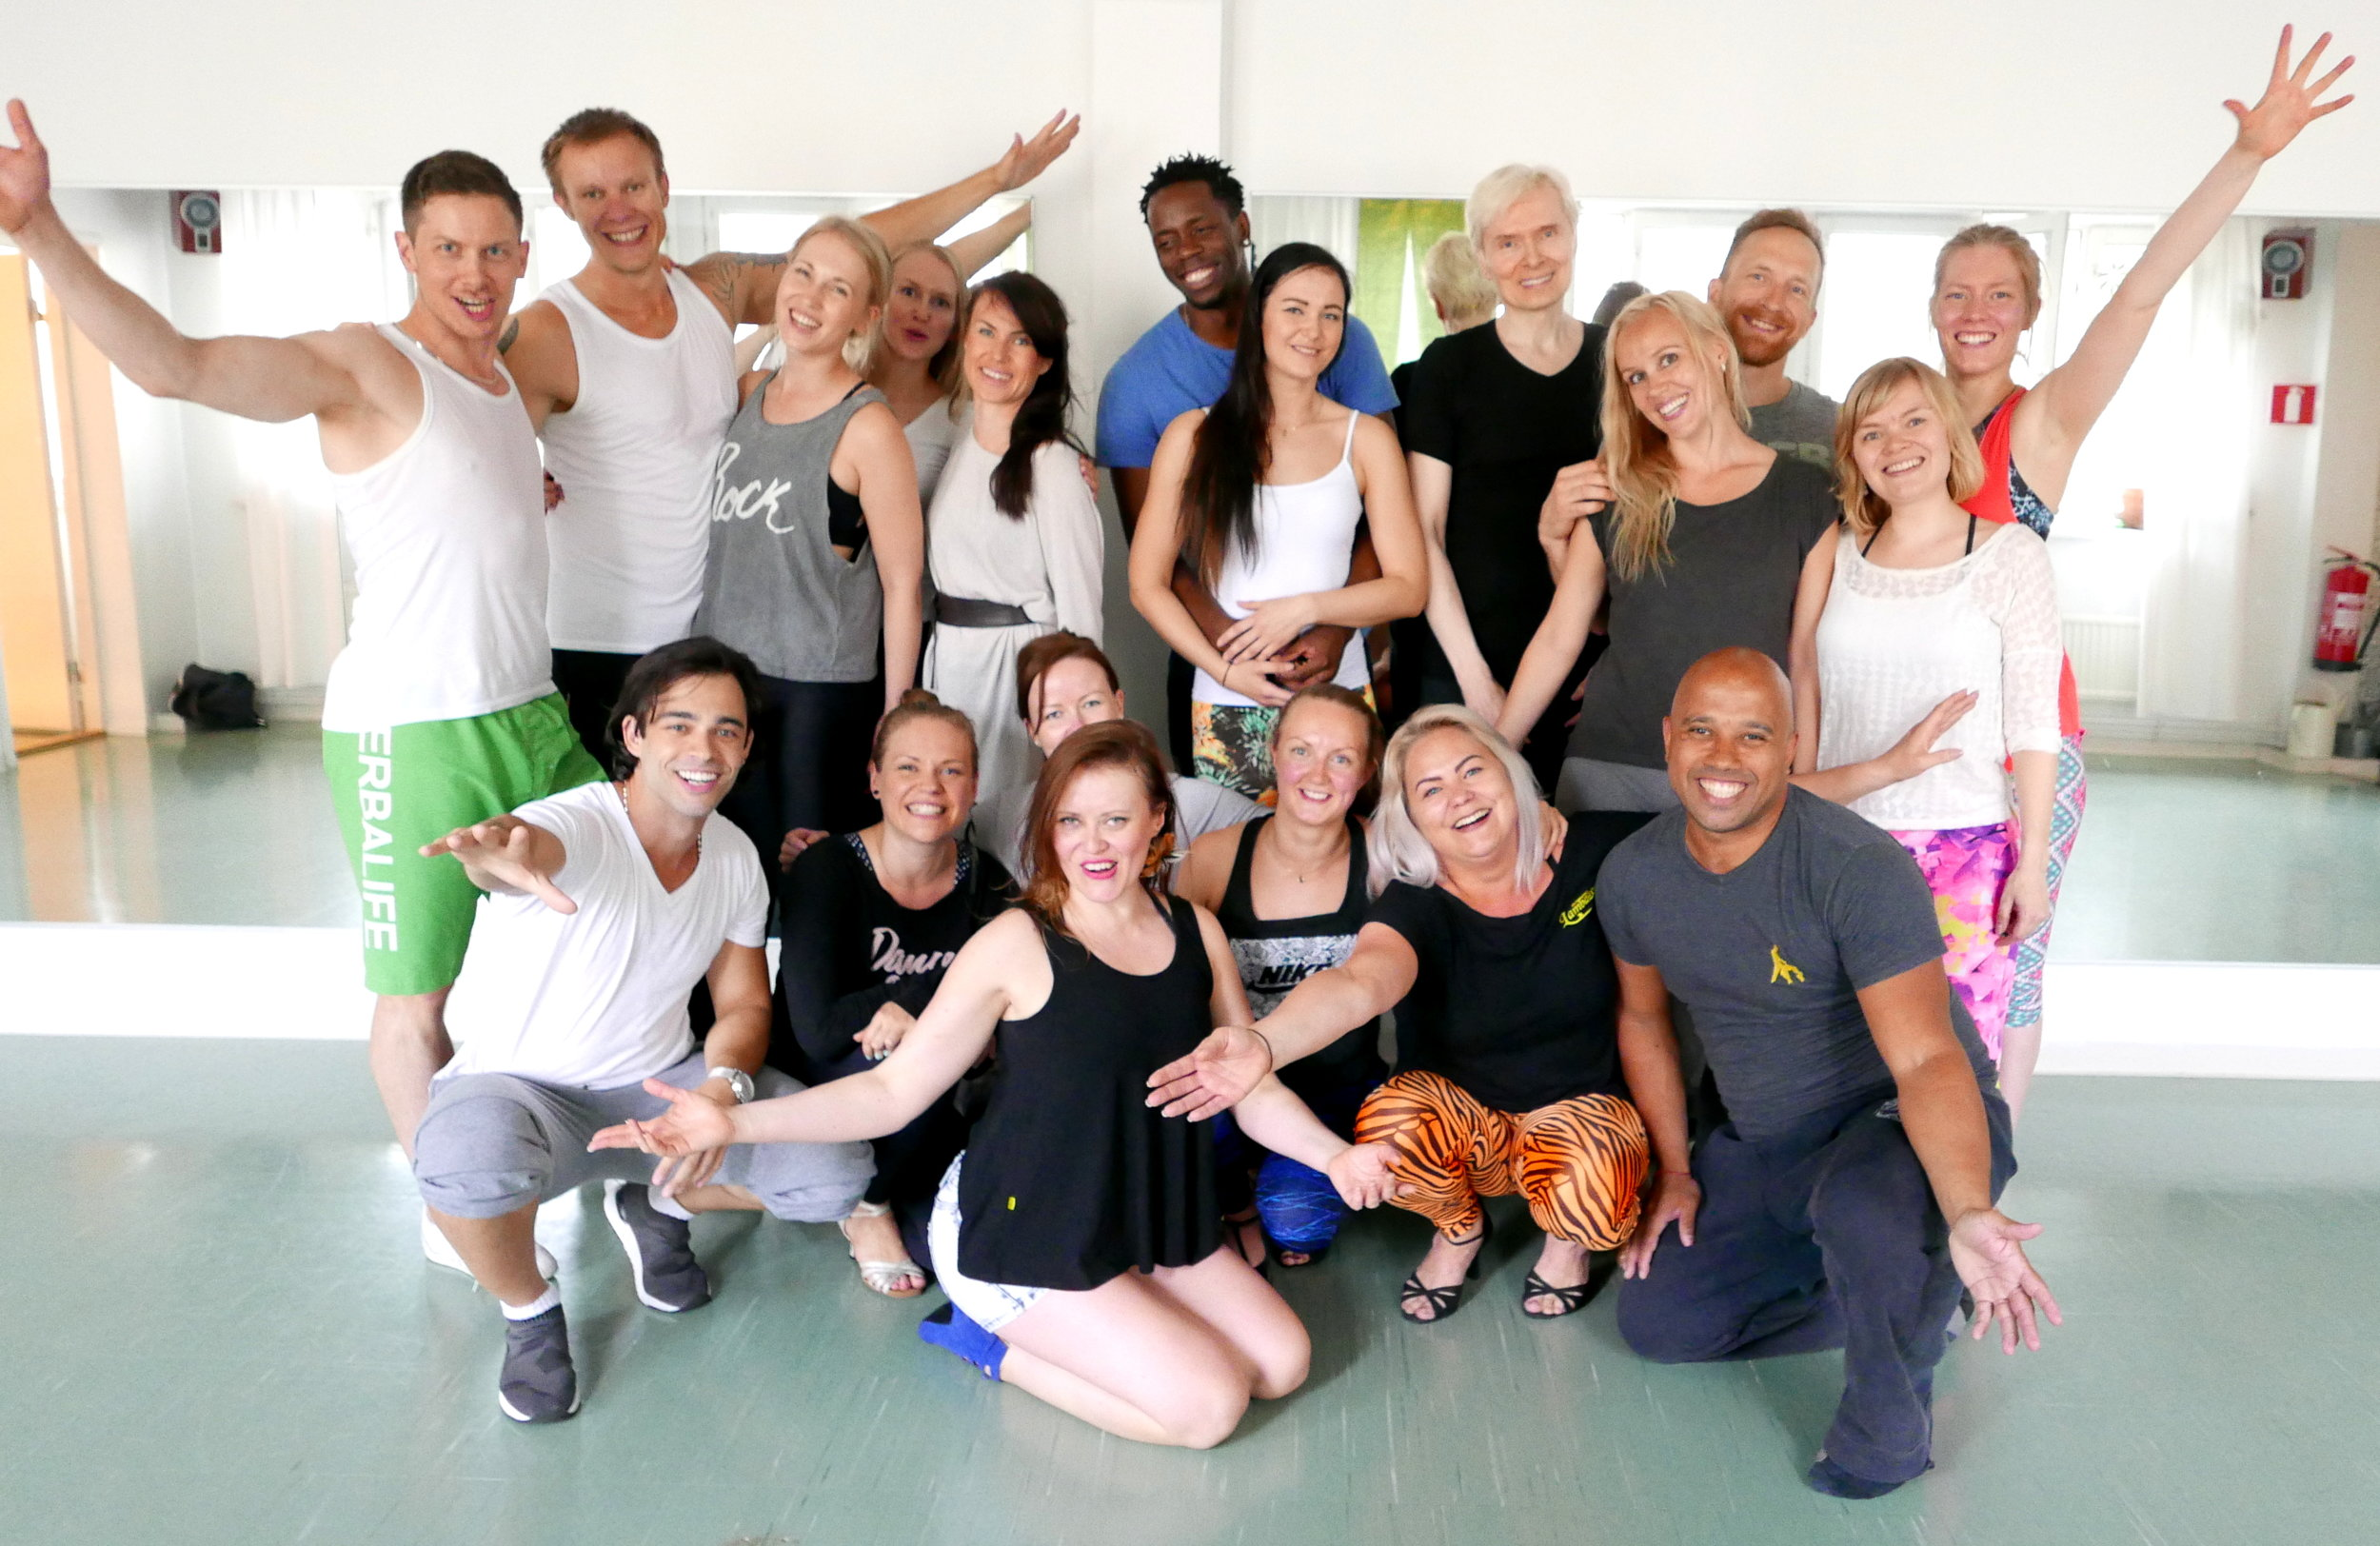 A moment from the end of our summer classes - looking forward to more smiles like these this autumn too!!